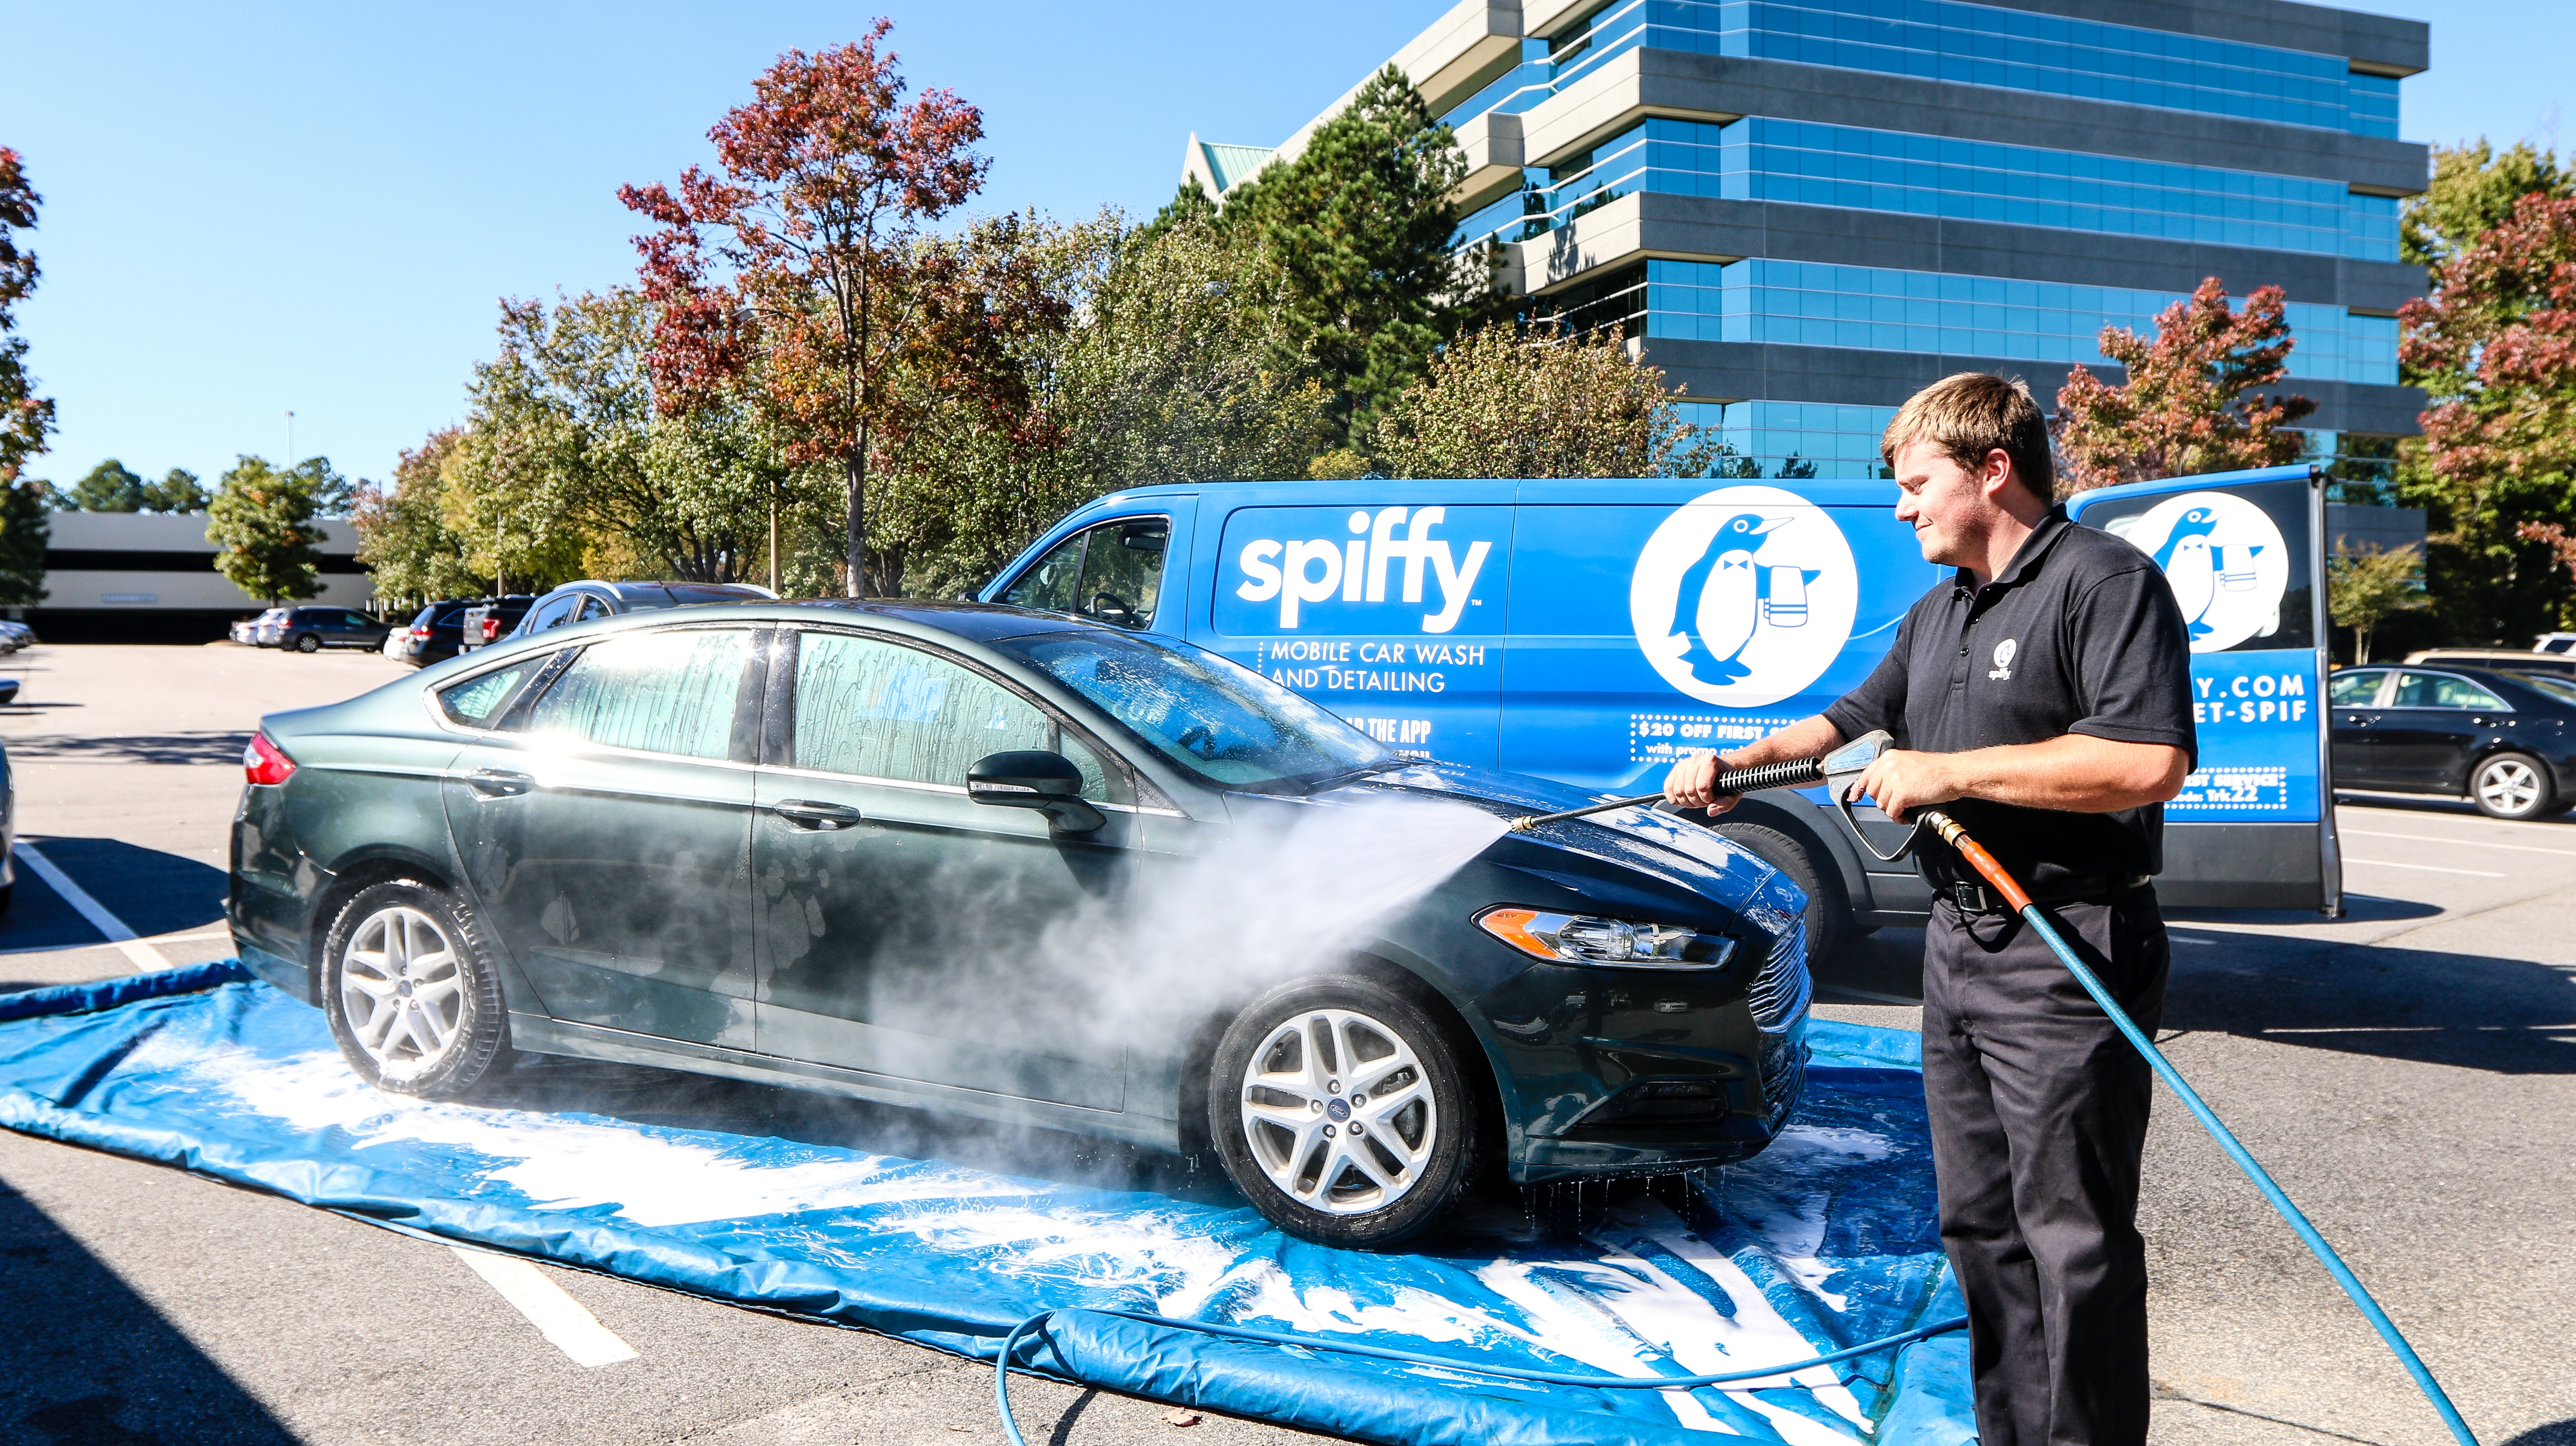 Spiffy mobile car wash and detailing reclaim mat